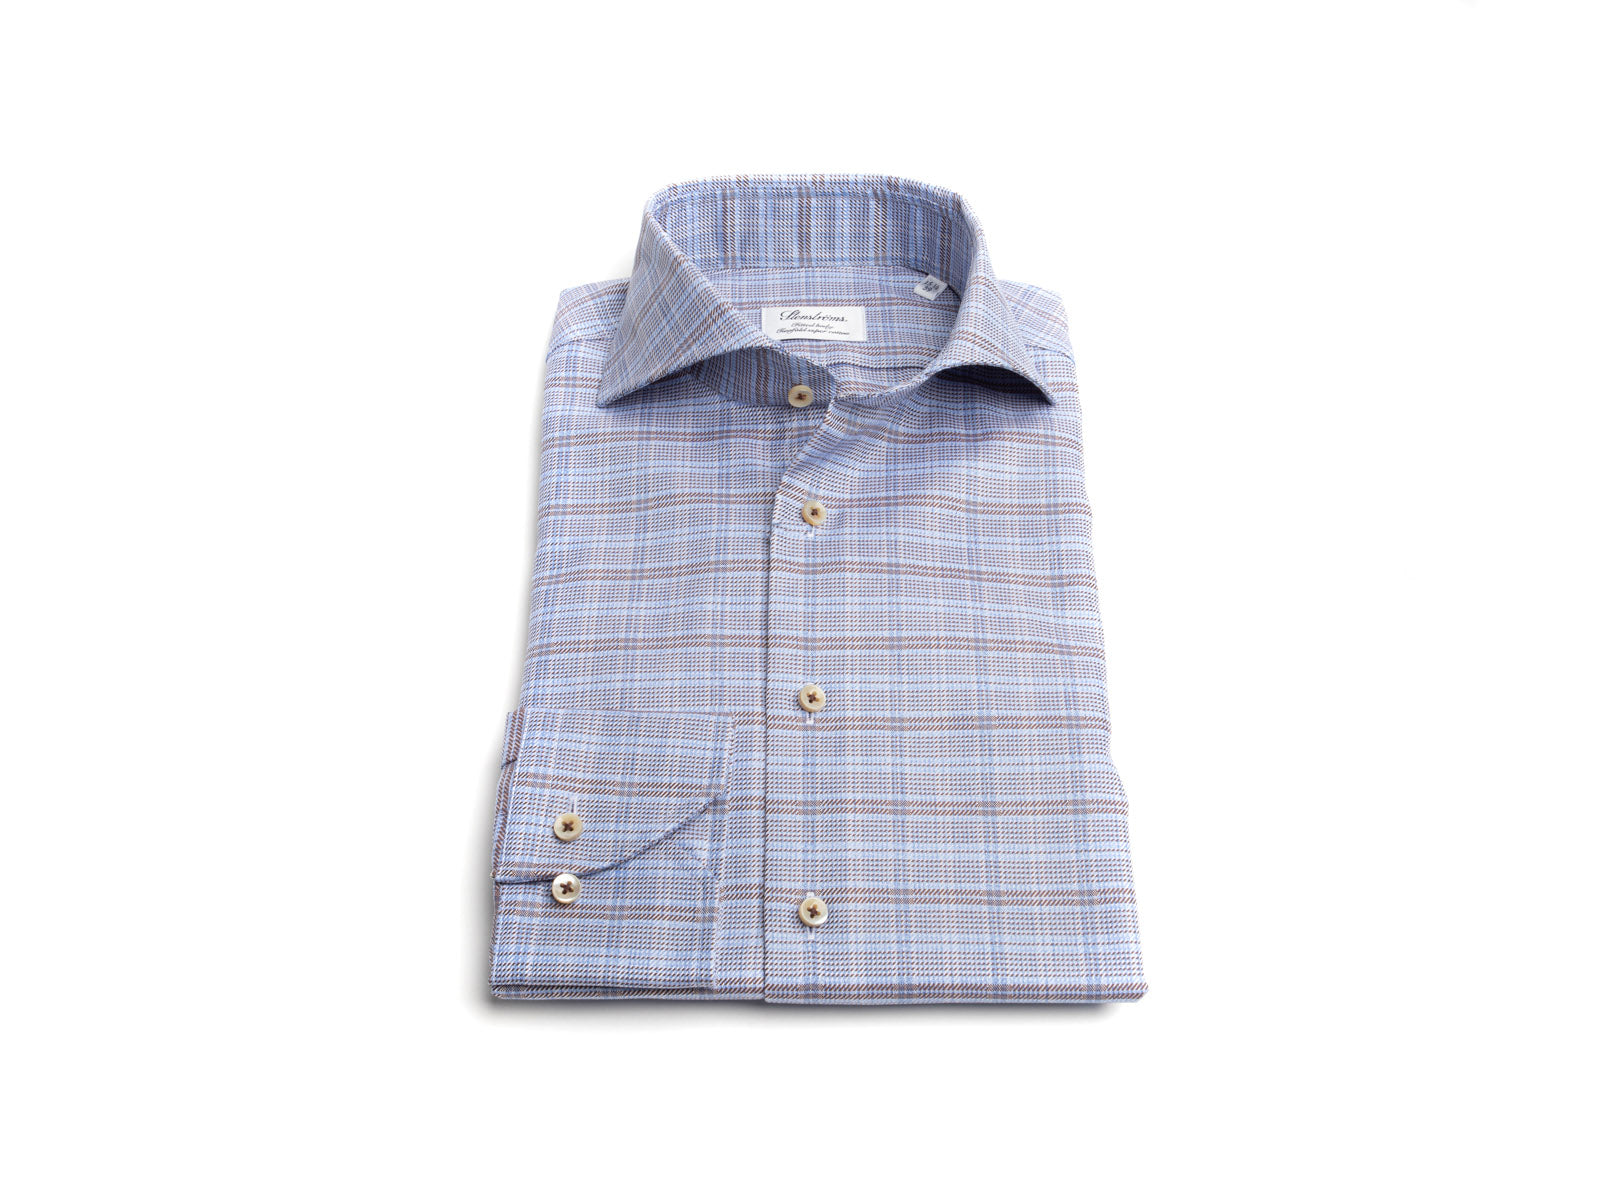 Blue/Brown Plaid Dress Shirt